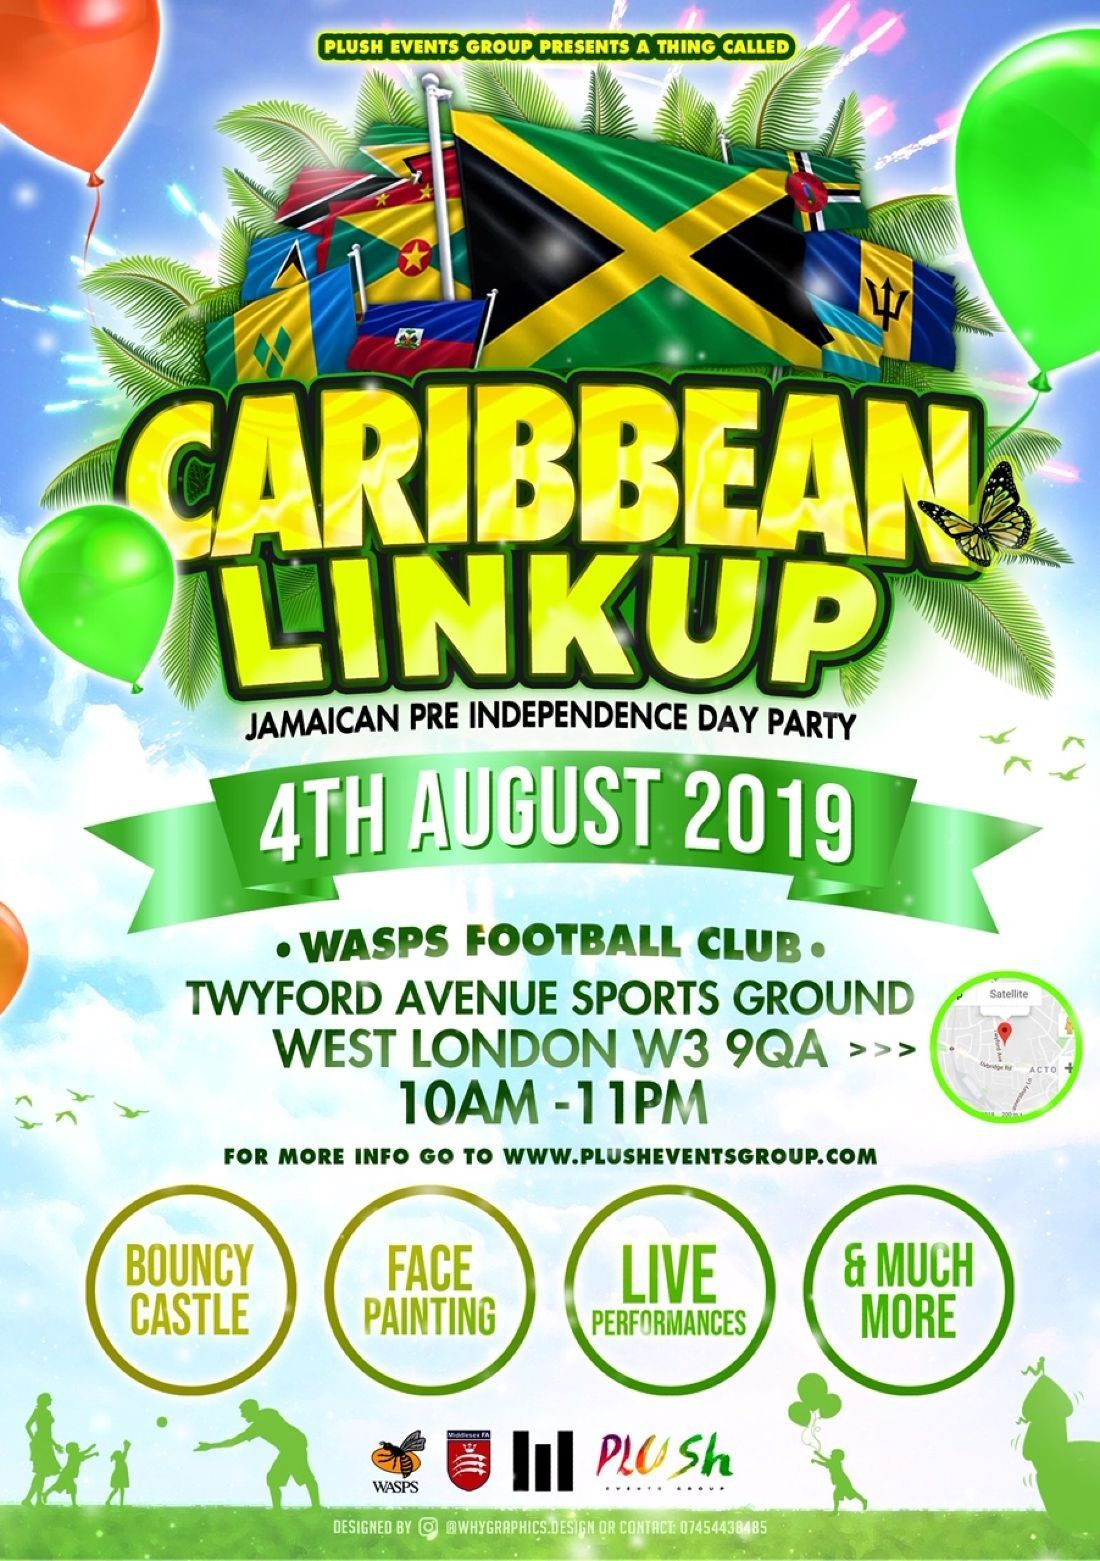 ⭐CARIBBEAN LINKUP⭐Jamaica independence Pre Party + More